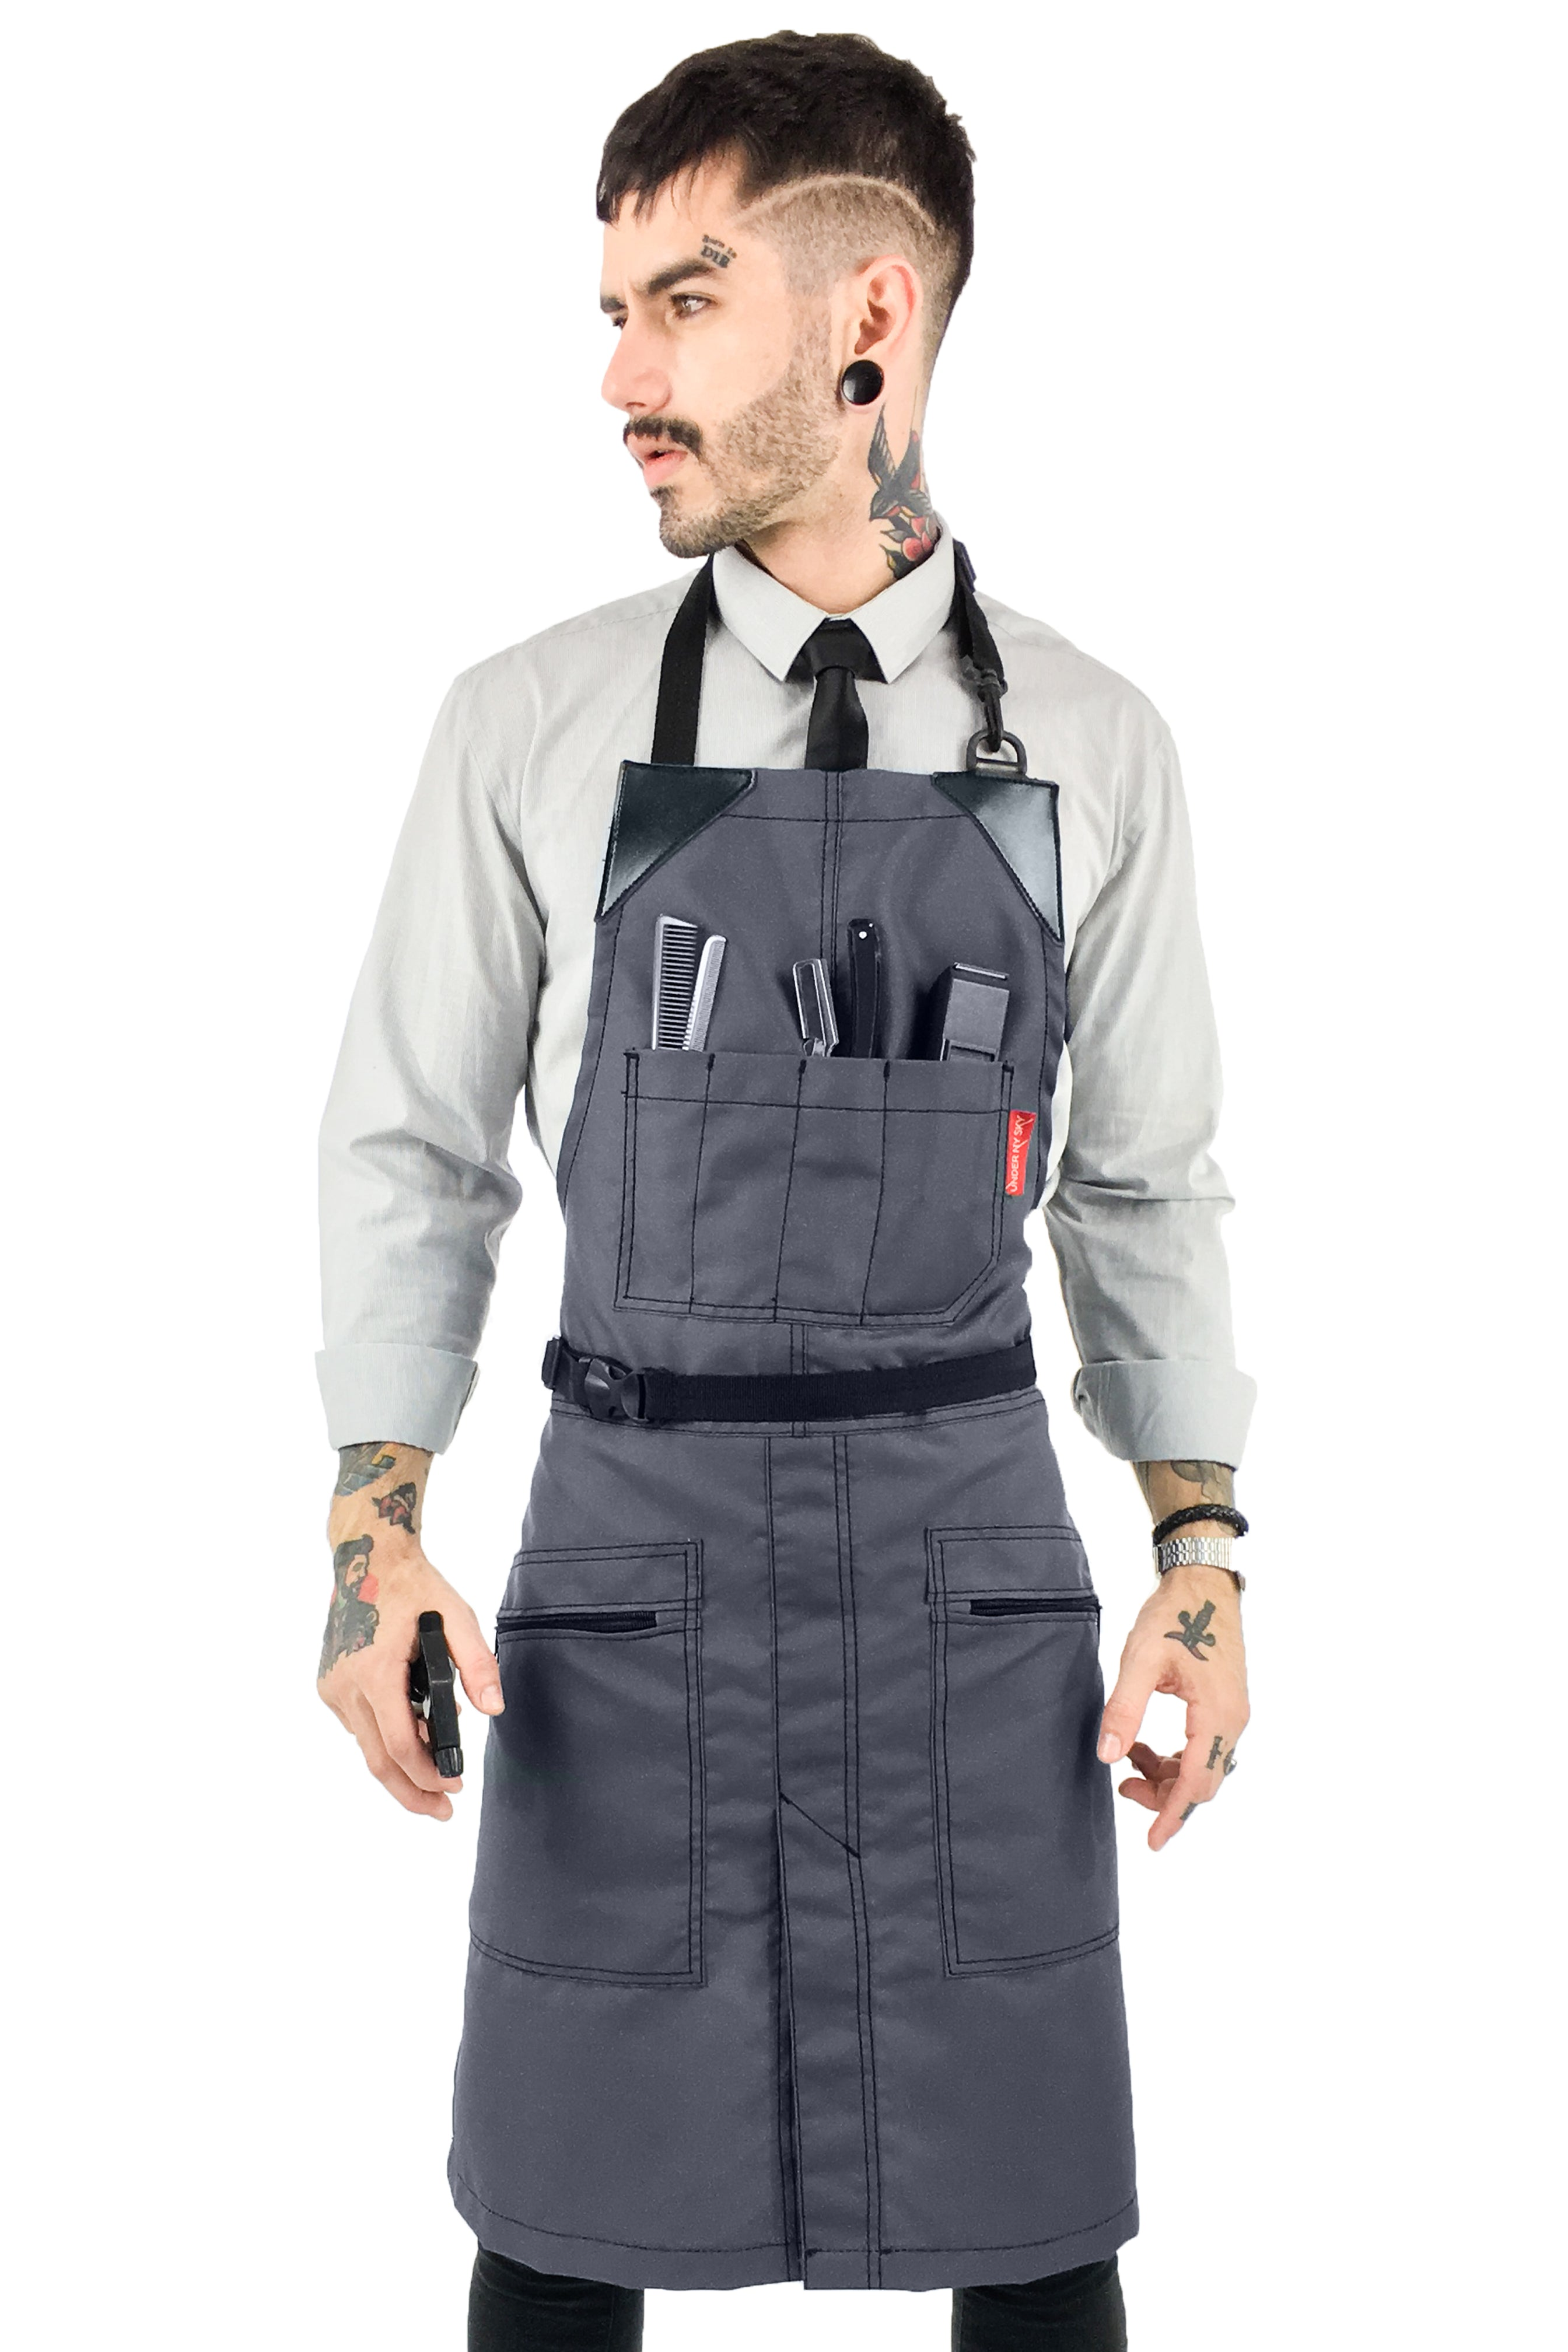 Barber Chemical Waterproof No-Tie Apron - Gray Oxford Canvas